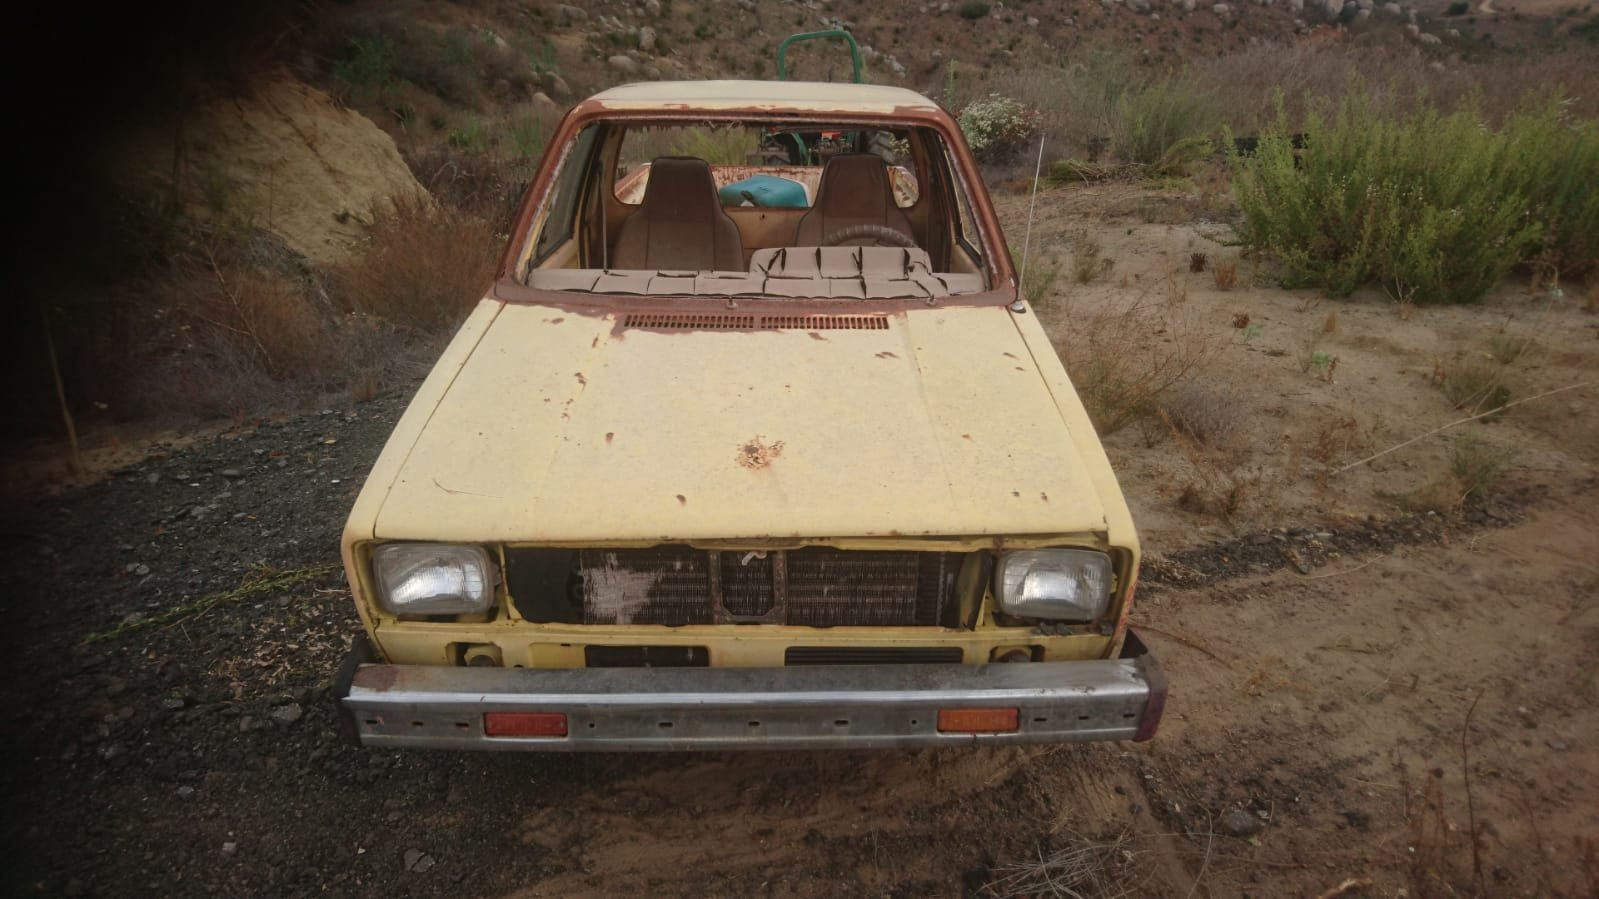 1980 Vw caddy  For Sale (picture 1 of 5)